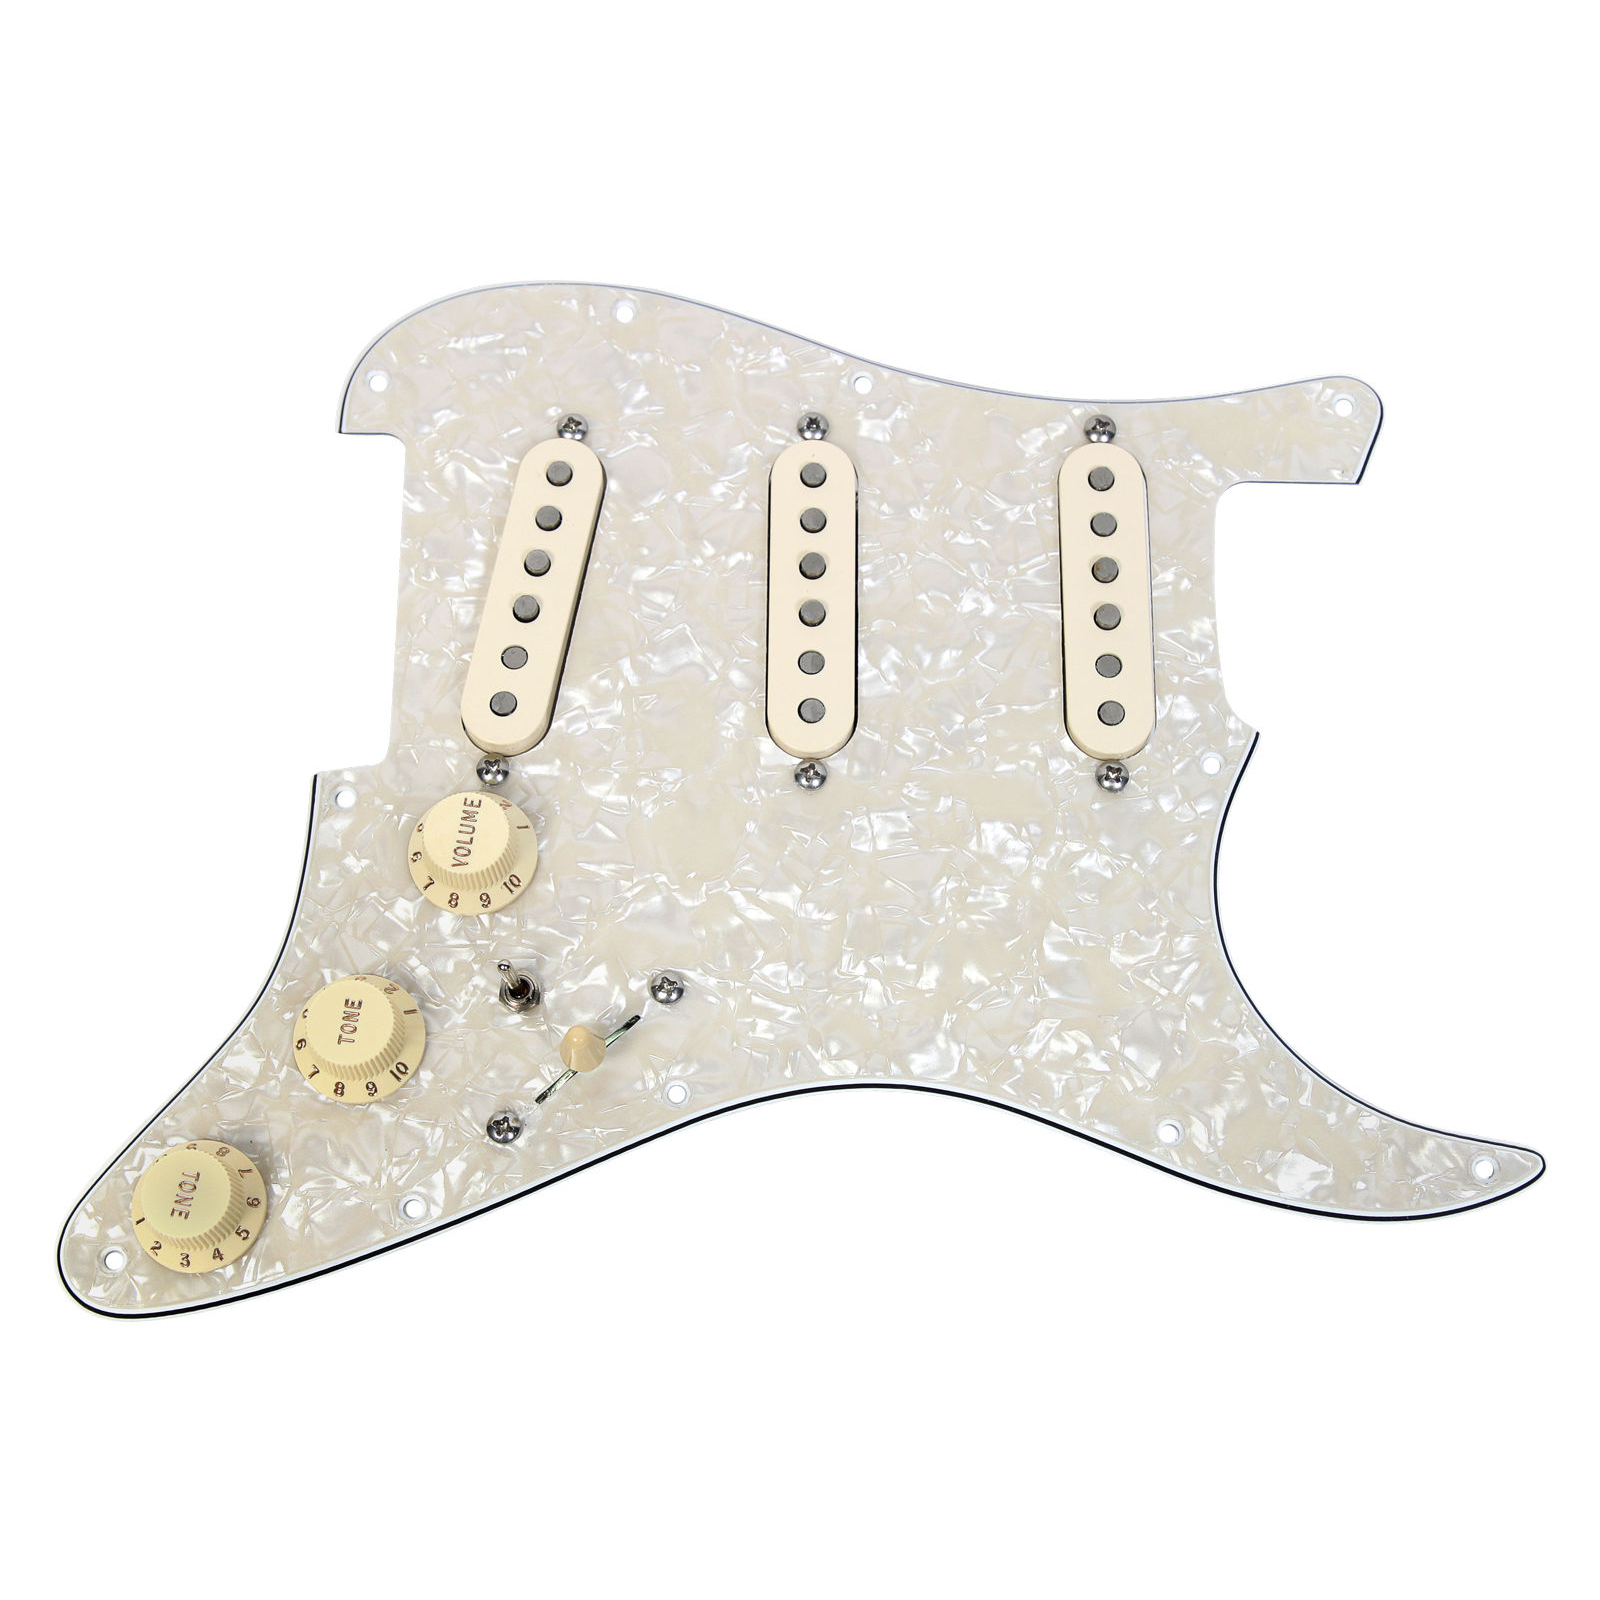 920D Custom Shop Texas Special Loaded Pickguard Fender Strat 7 Way AWP AW by